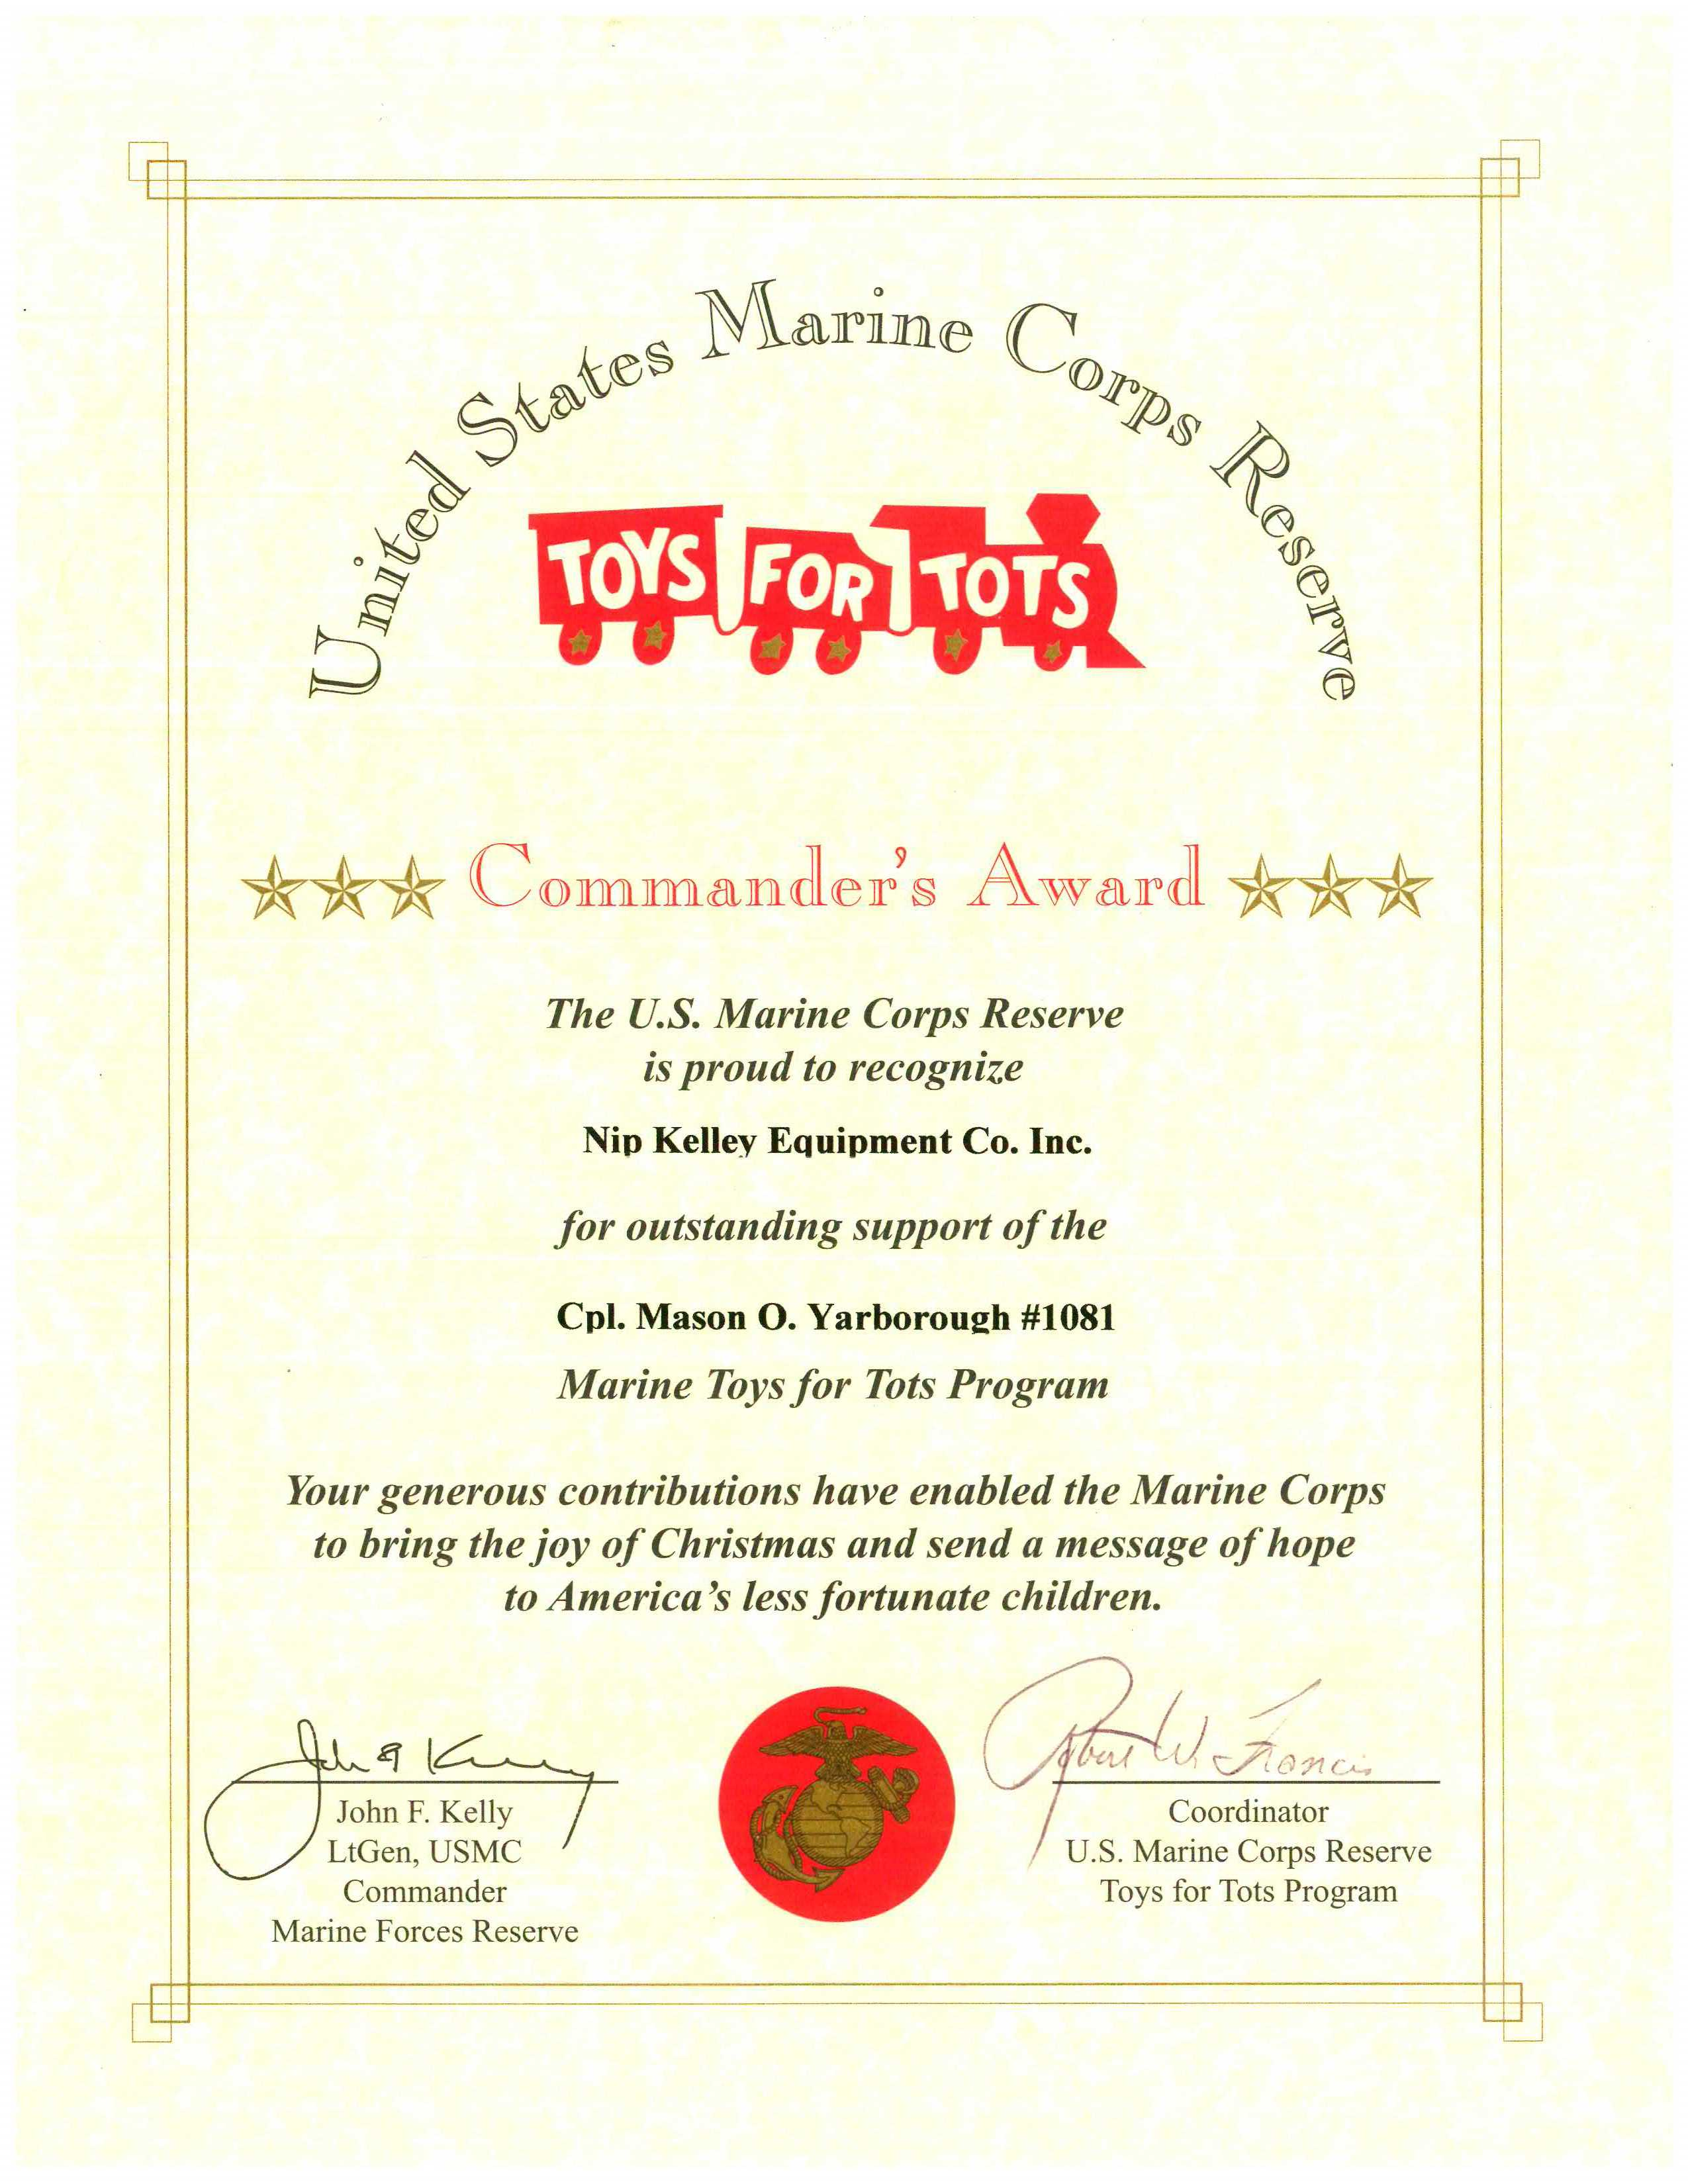 Toys for Tots Award